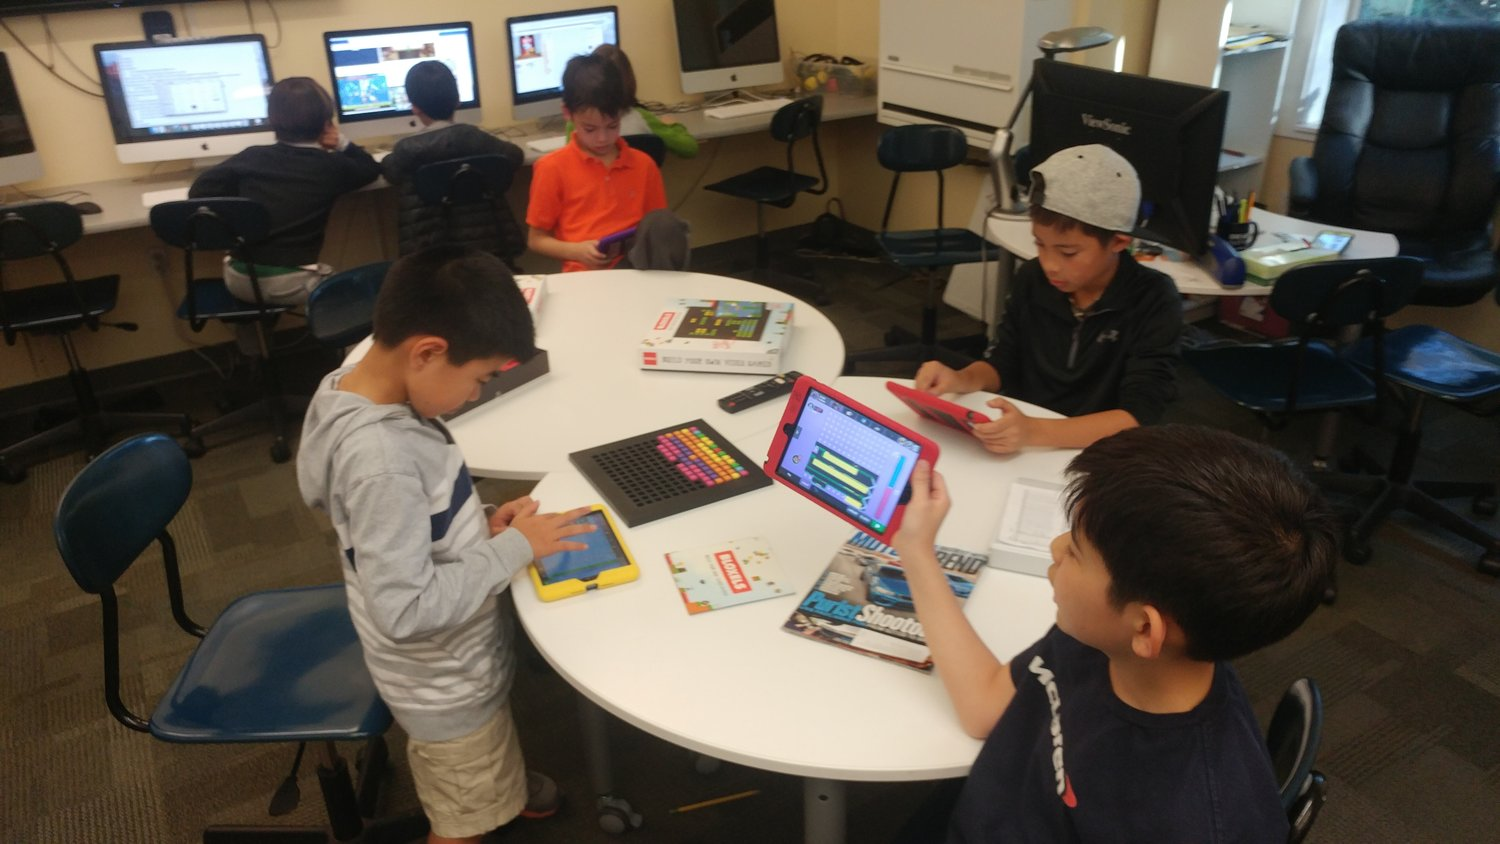 The Art of Codefu, Brought to Your School/Camp - Our CodeFu Electives, Classes, or Full day Camps are available for Summer and Holiday Breaks.From Website Design to Robotic Coding to Video Game Creation to Mine Craft Modding, we provide everything you need to offer the Art of CodeFu to students at your Camp.